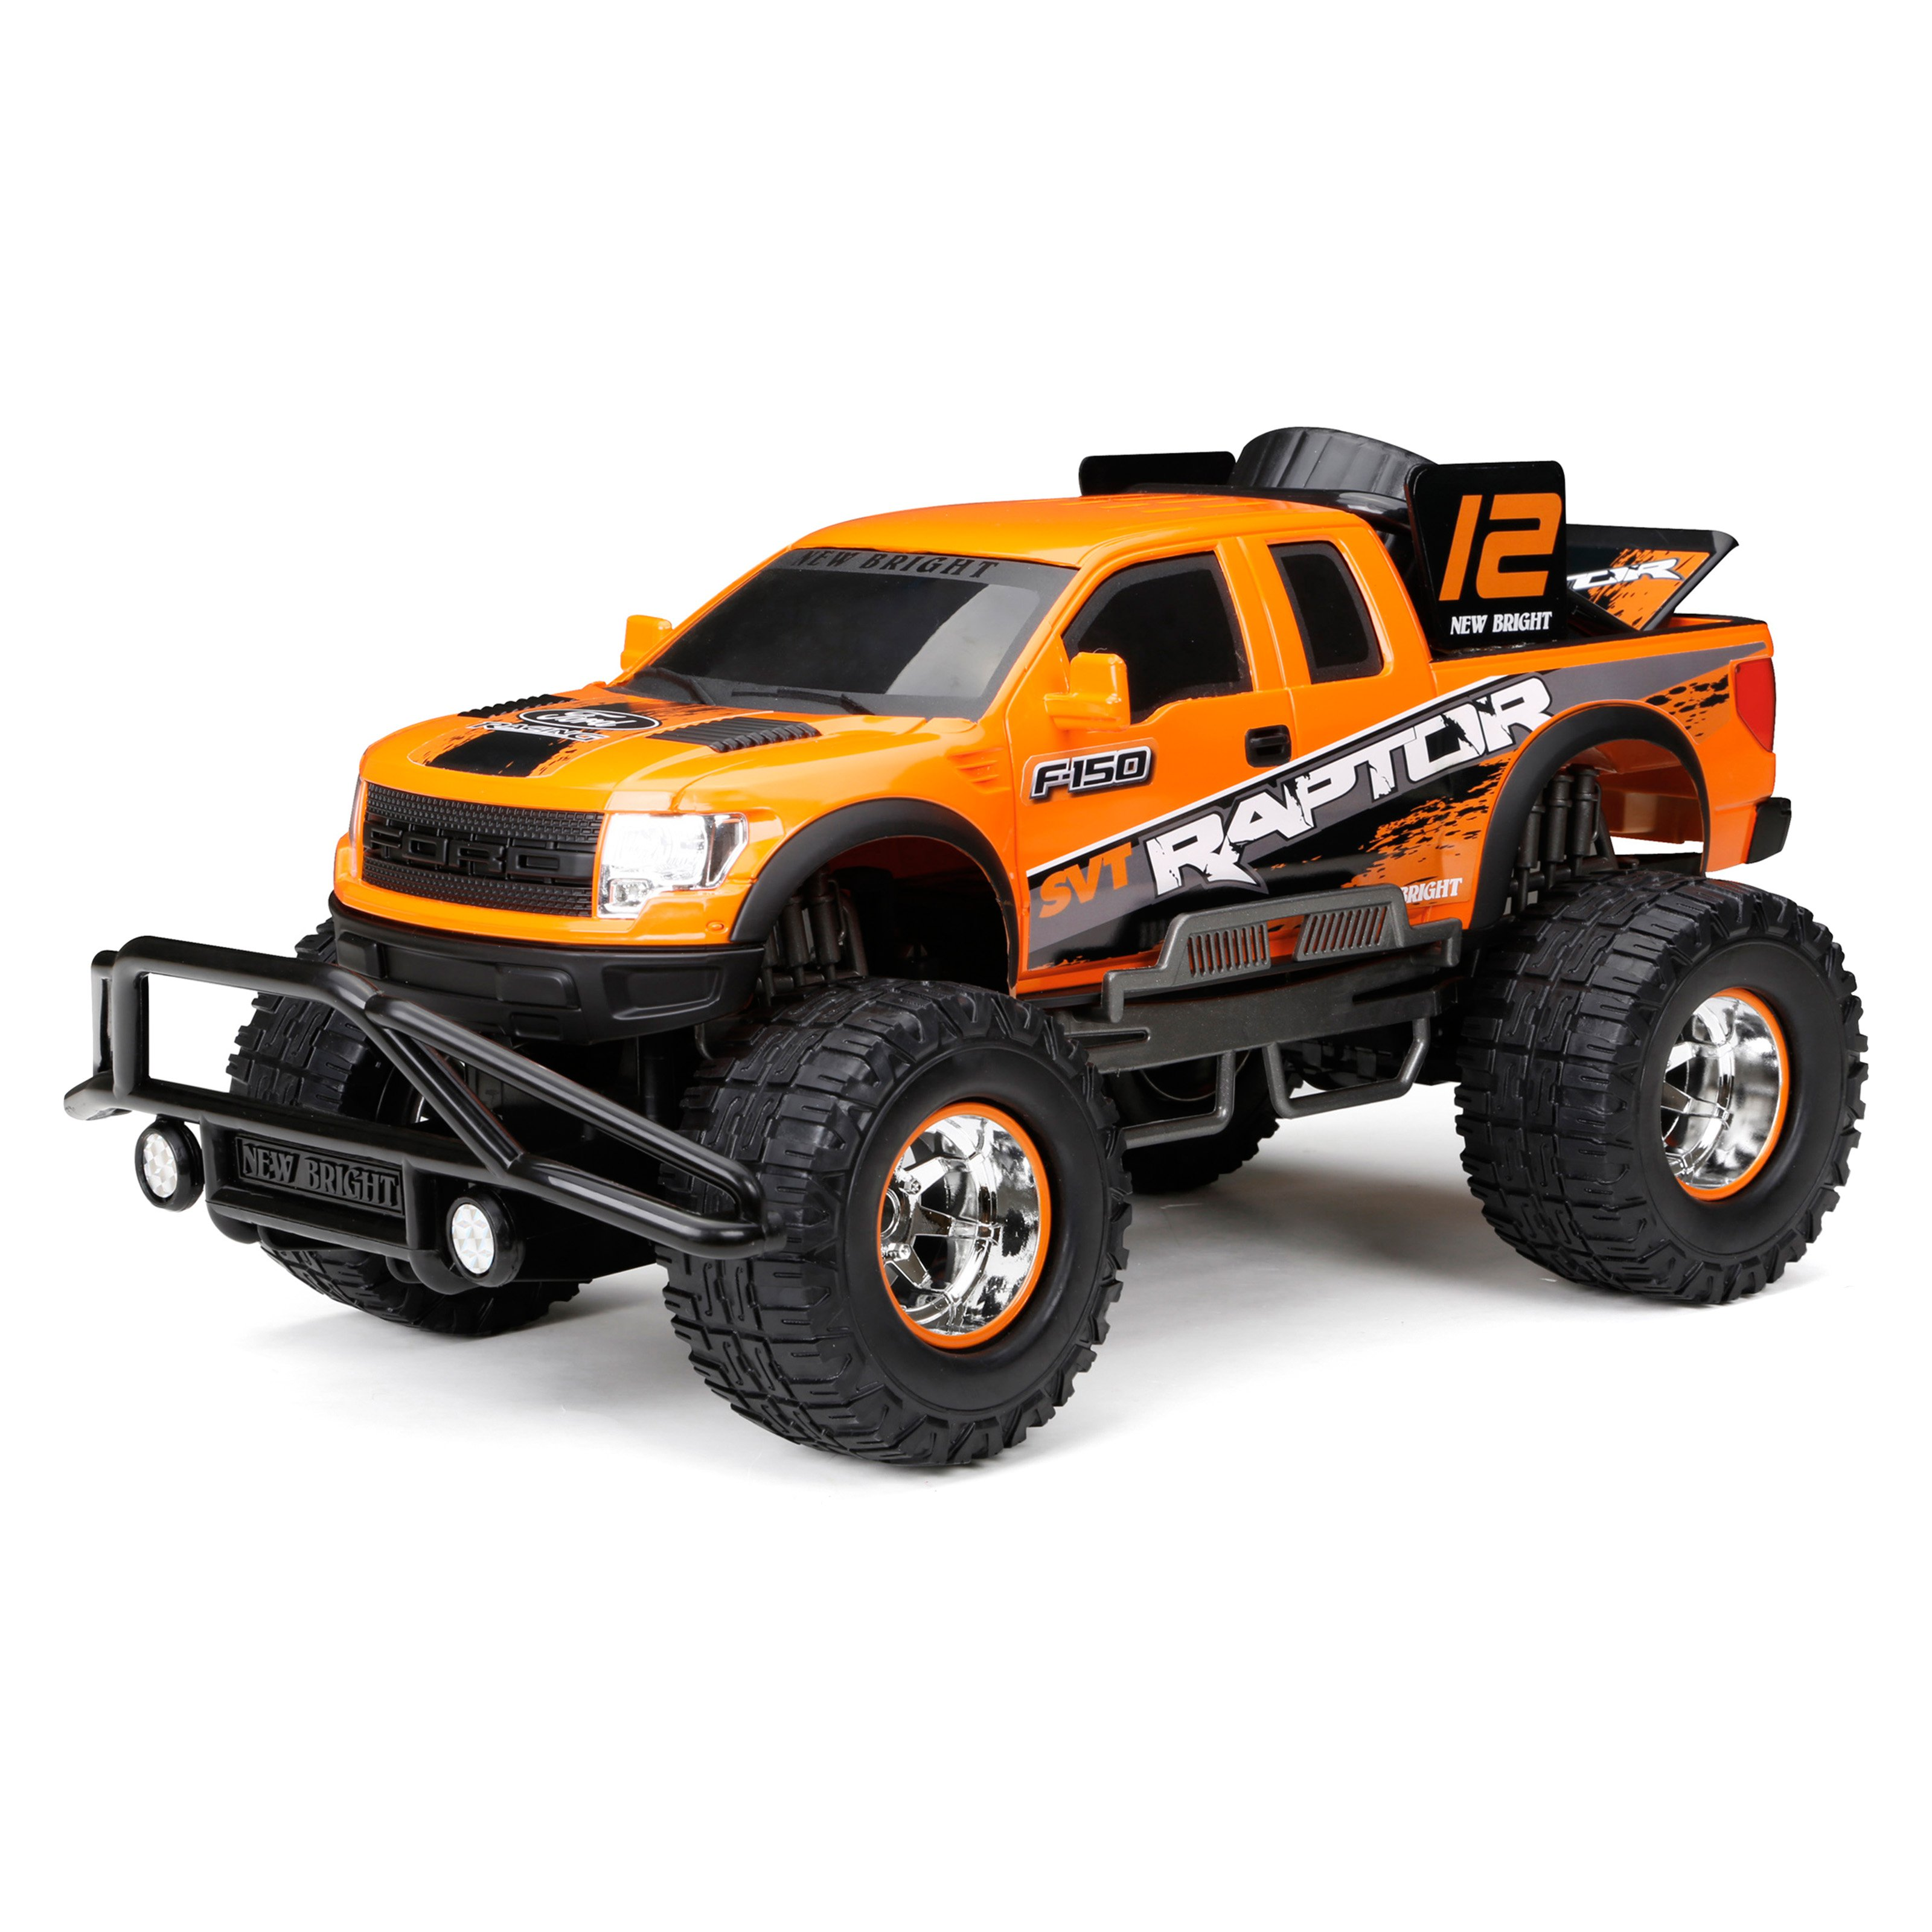 New Bright 110 Baja Extreme Ford F-150 Raptor Radio Controlled Toy - Walmart.com  sc 1 st  Walmart & New Bright 1:10 Baja Extreme Ford F-150 Raptor Radio Controlled ... markmcfarlin.com